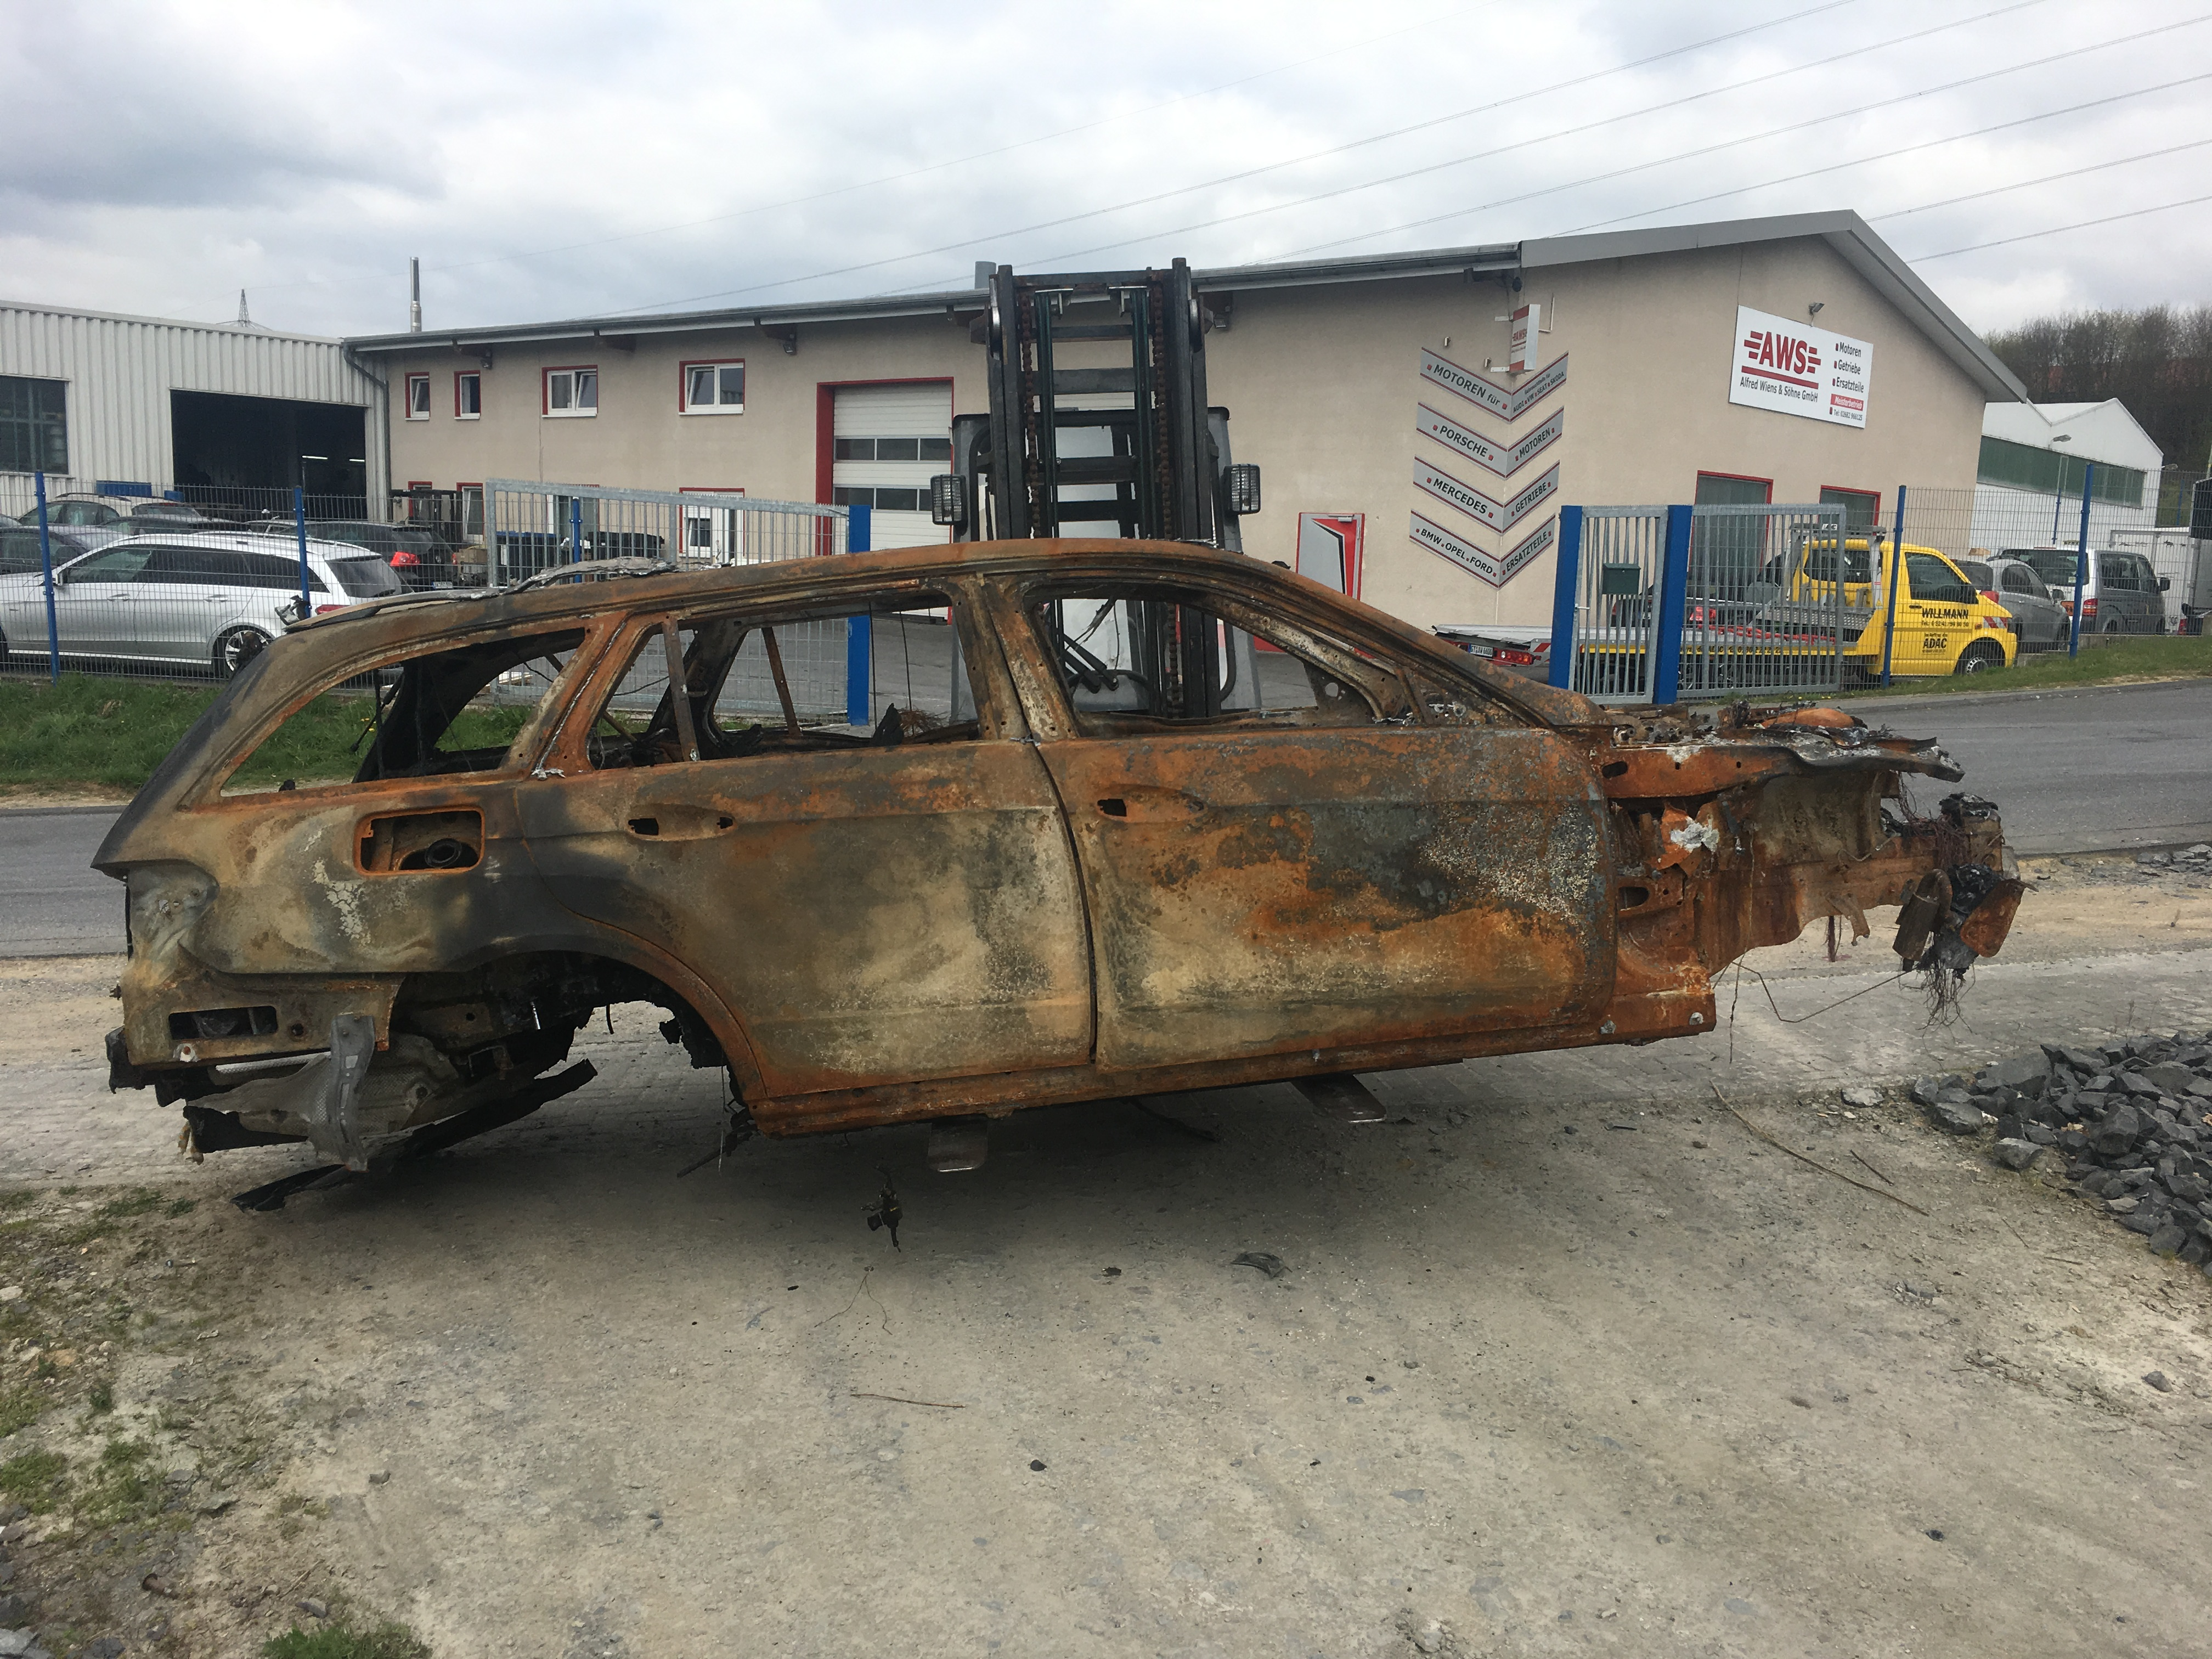 2010 body Body fire damage Mercedes Benz S212 E350 3.0 CDI 642.856 SCRAP